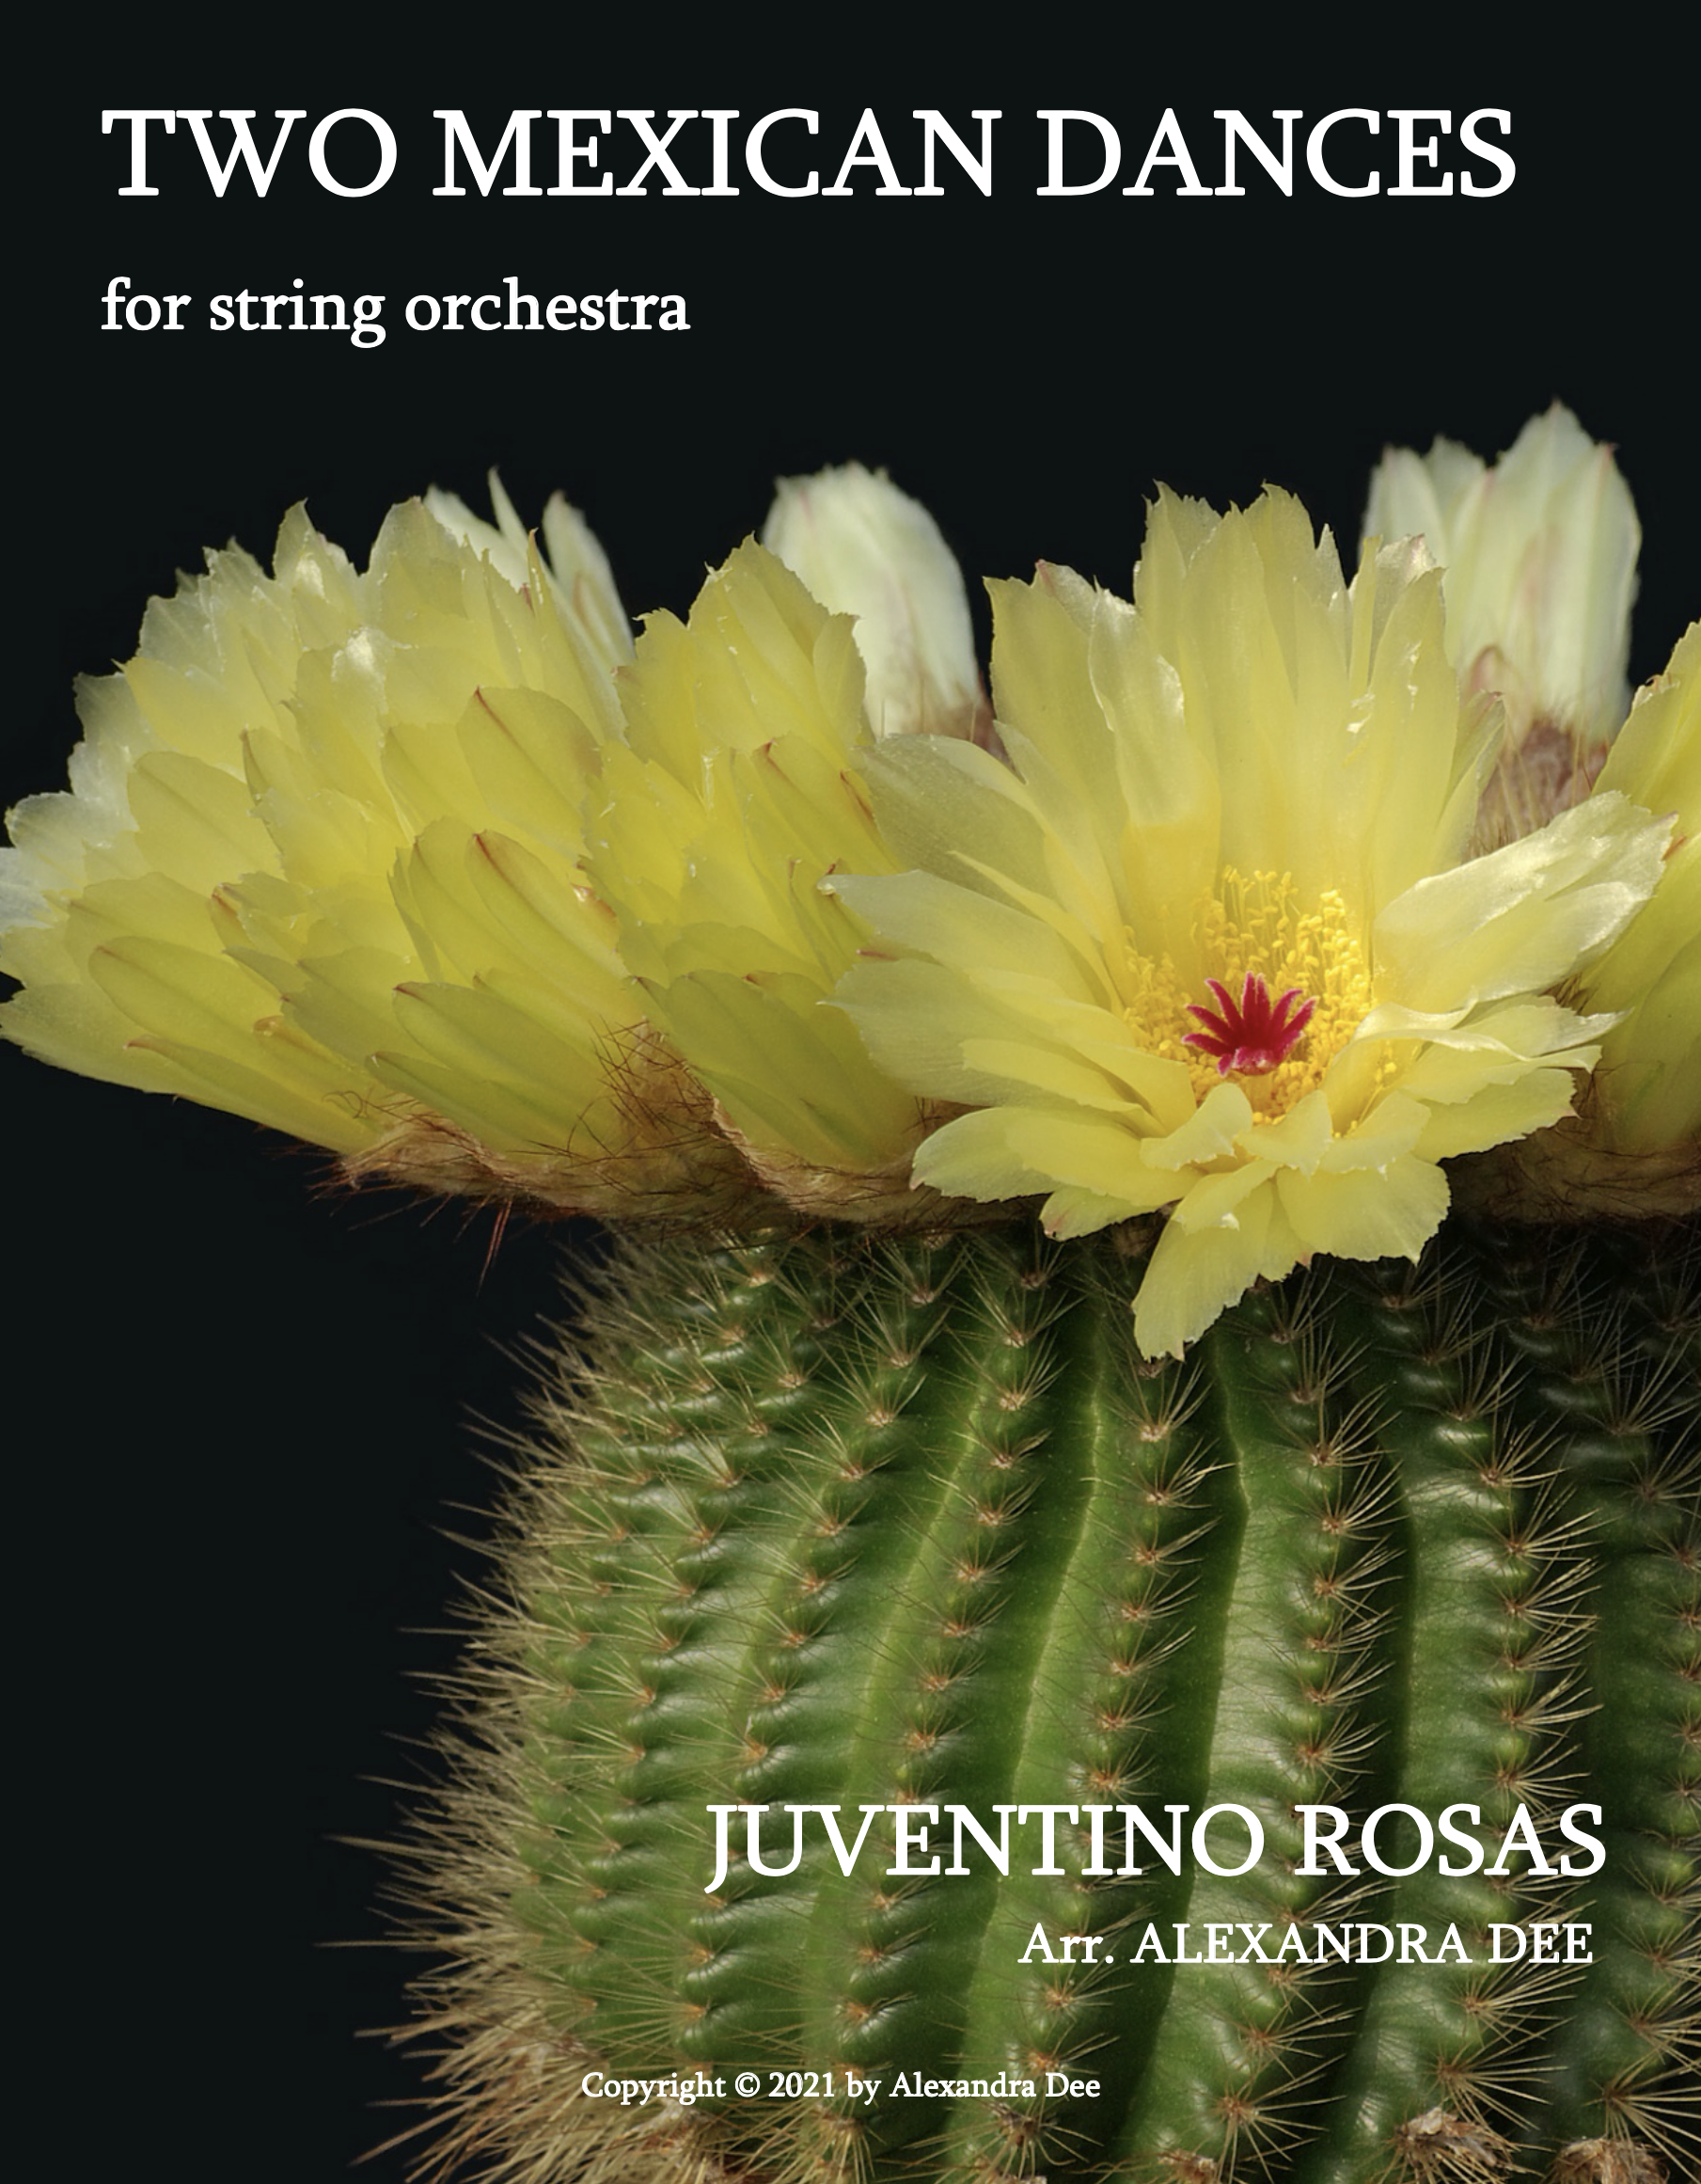 Two Mexican Dances by Juventino Rosas, arr. Dee